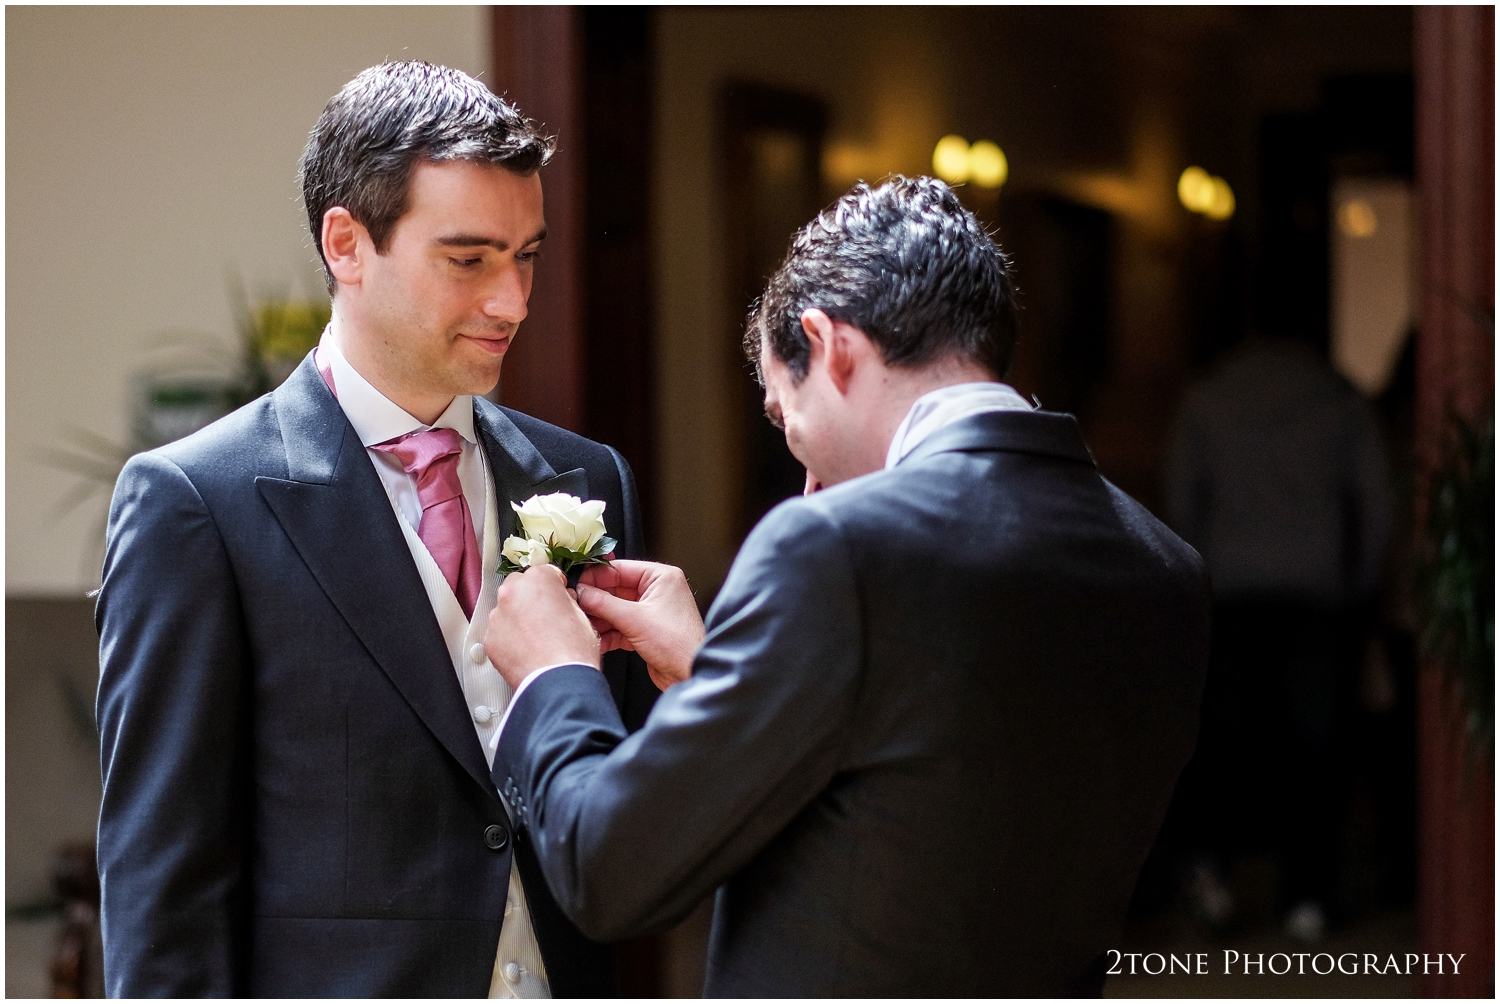 Crisp avalanche roses for the grooms Boutonnière.